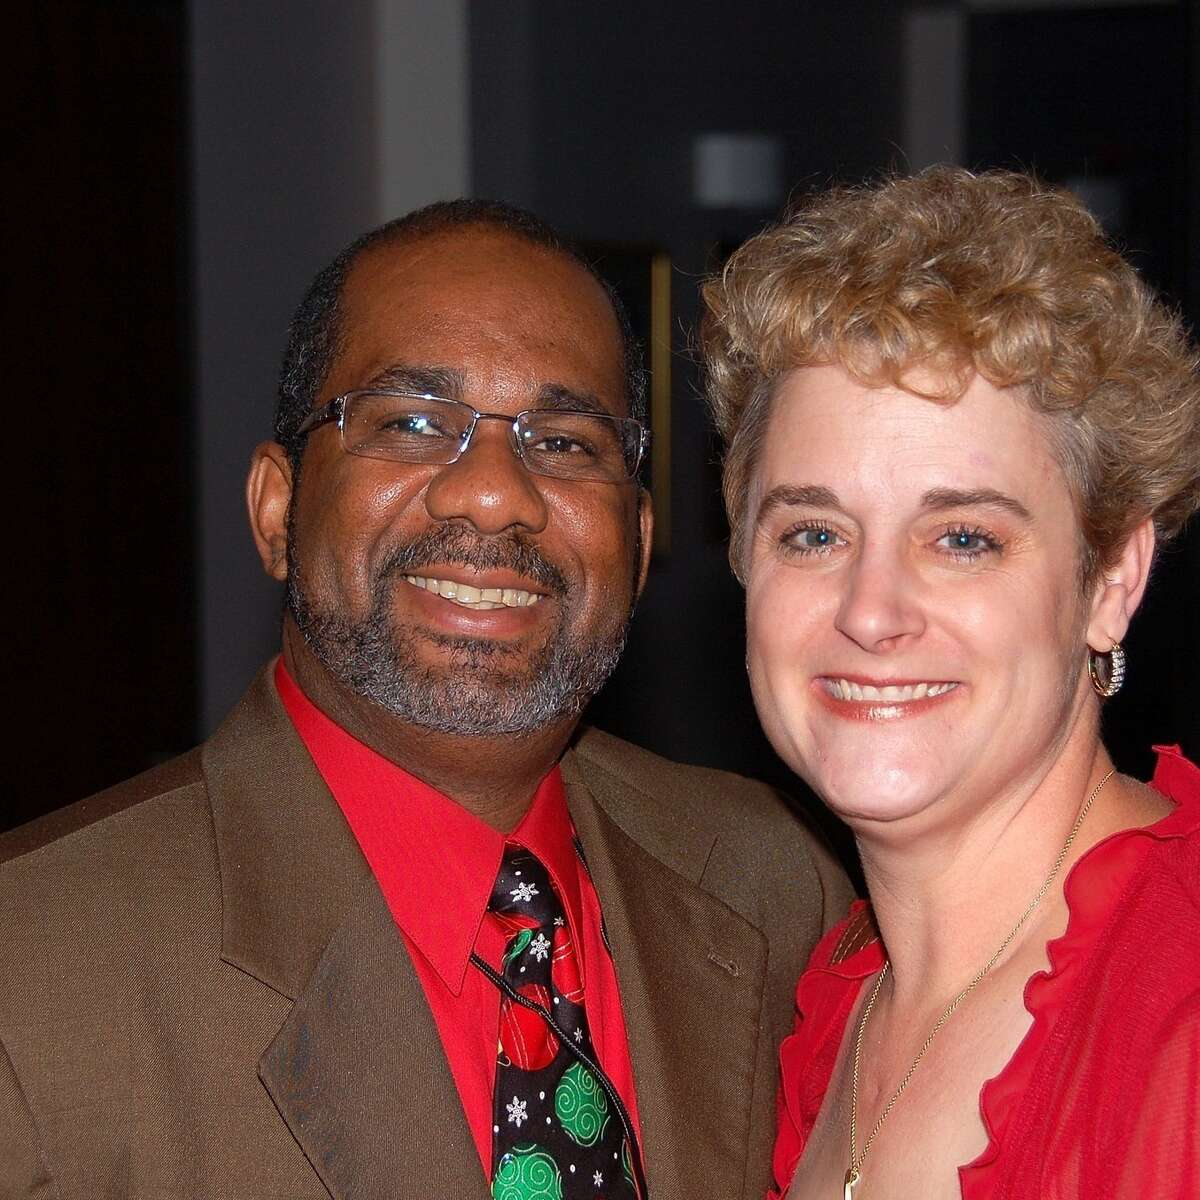 Ryan Nelson-Paryag and his wife, Lindy, attend Kingwood Christian Church.